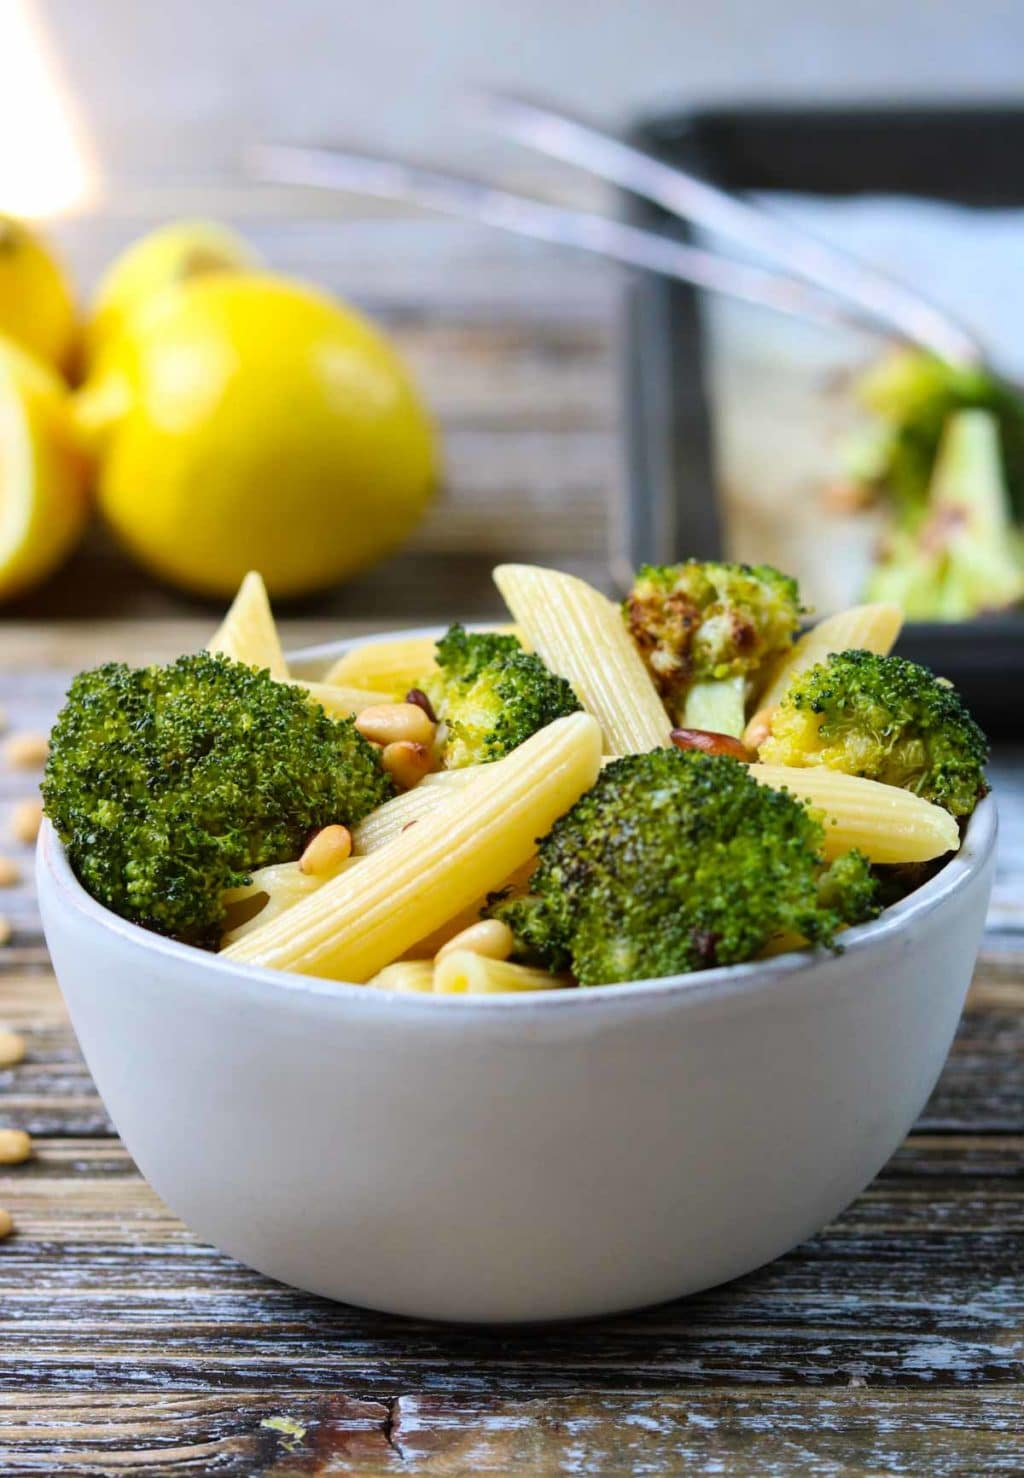 A white bowl full of pasta and broccoli, lemons in the background